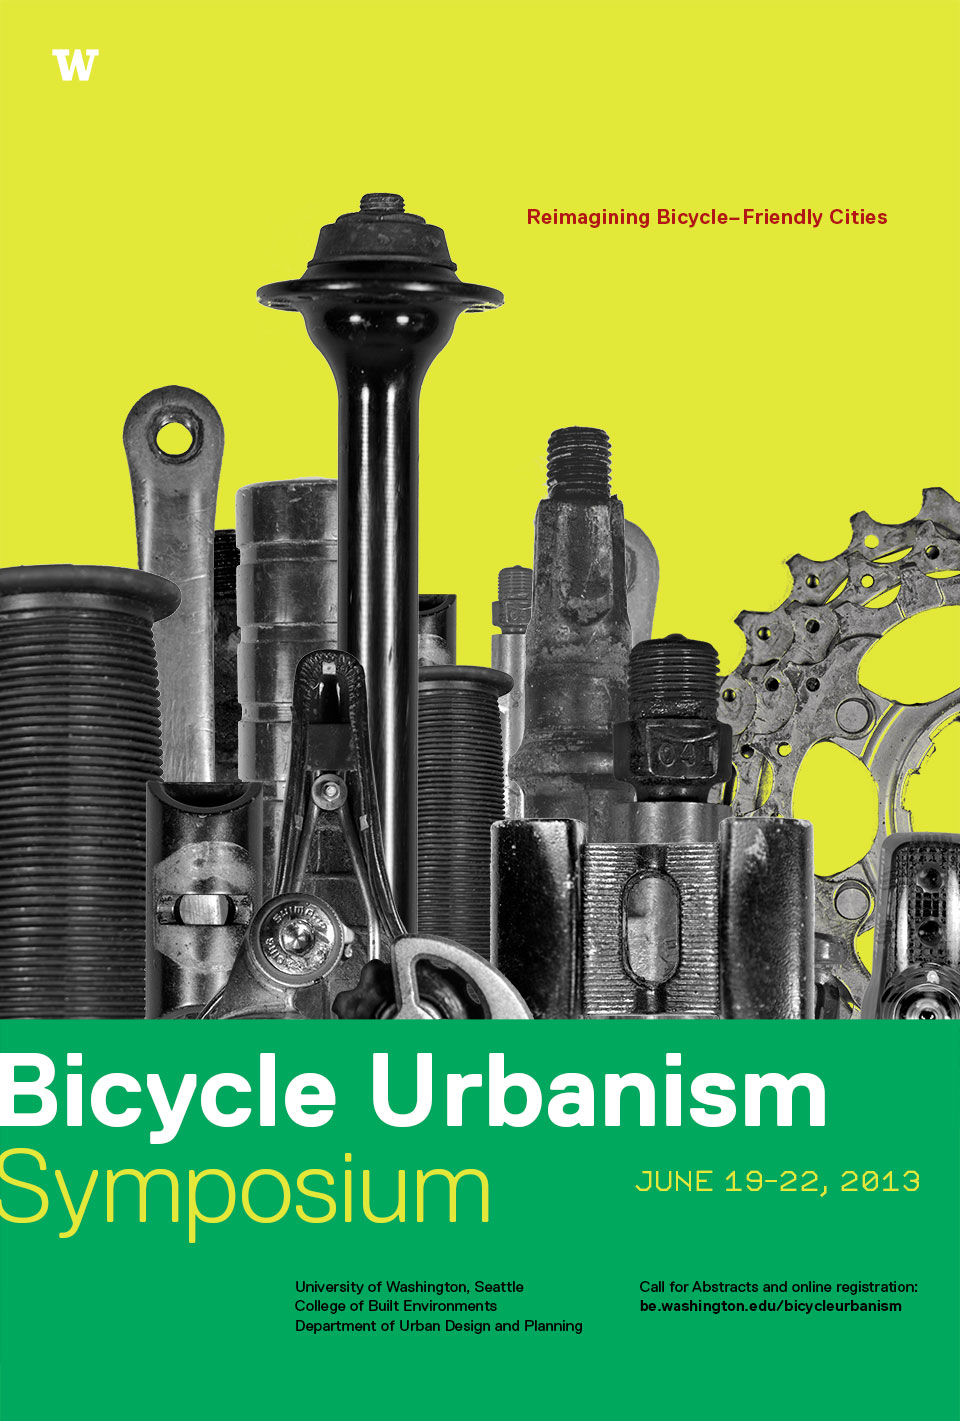 Poster for Bicycle Urbanism symposium at the UW June 19-22, 2013